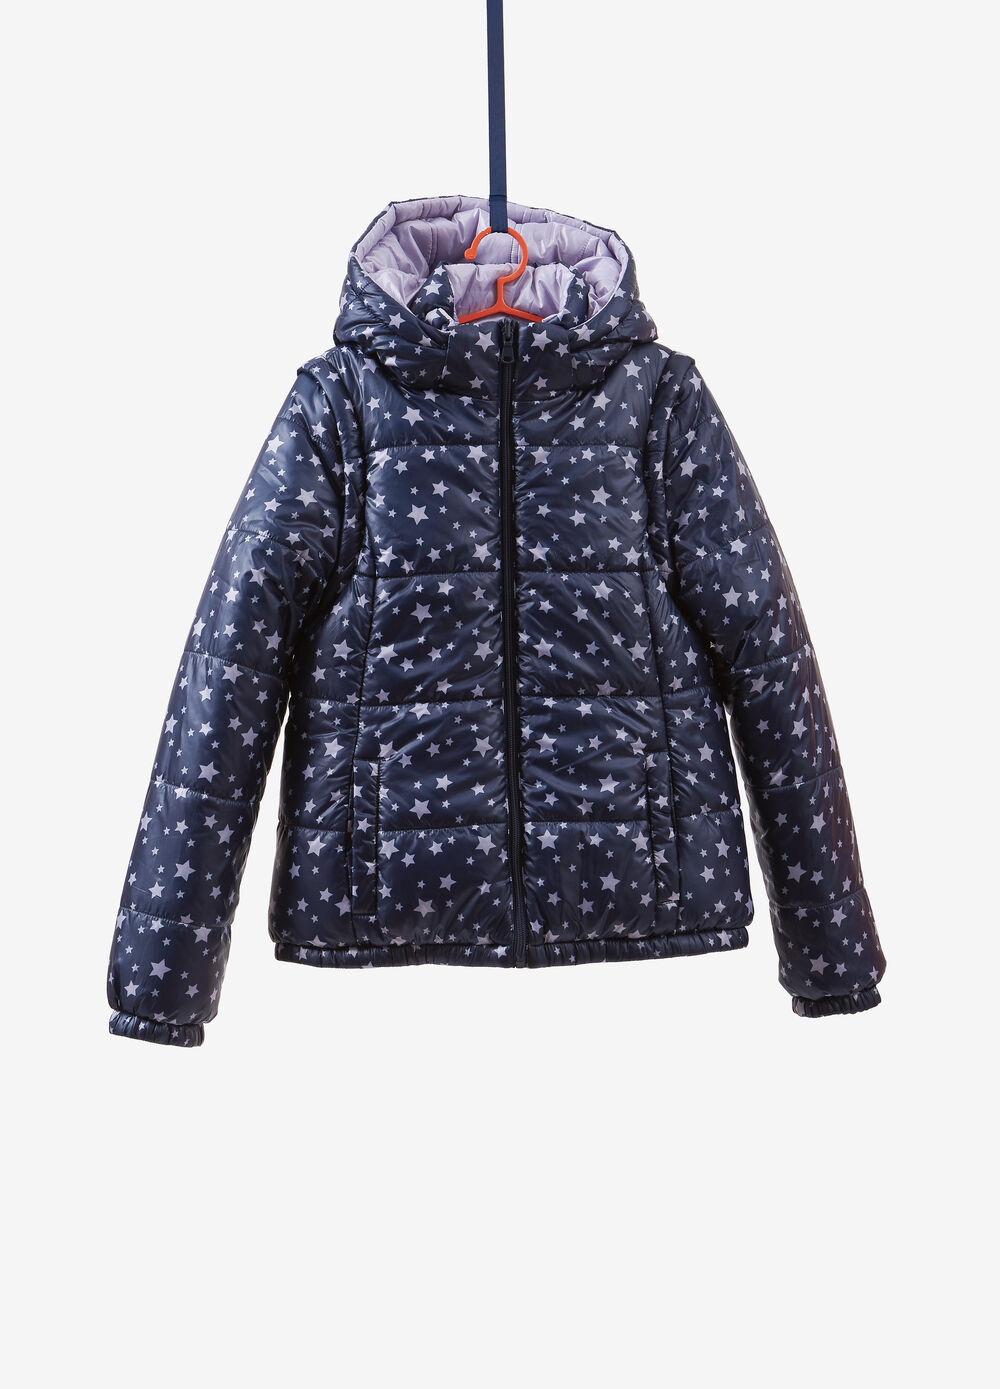 Quilted jacket with star pattern